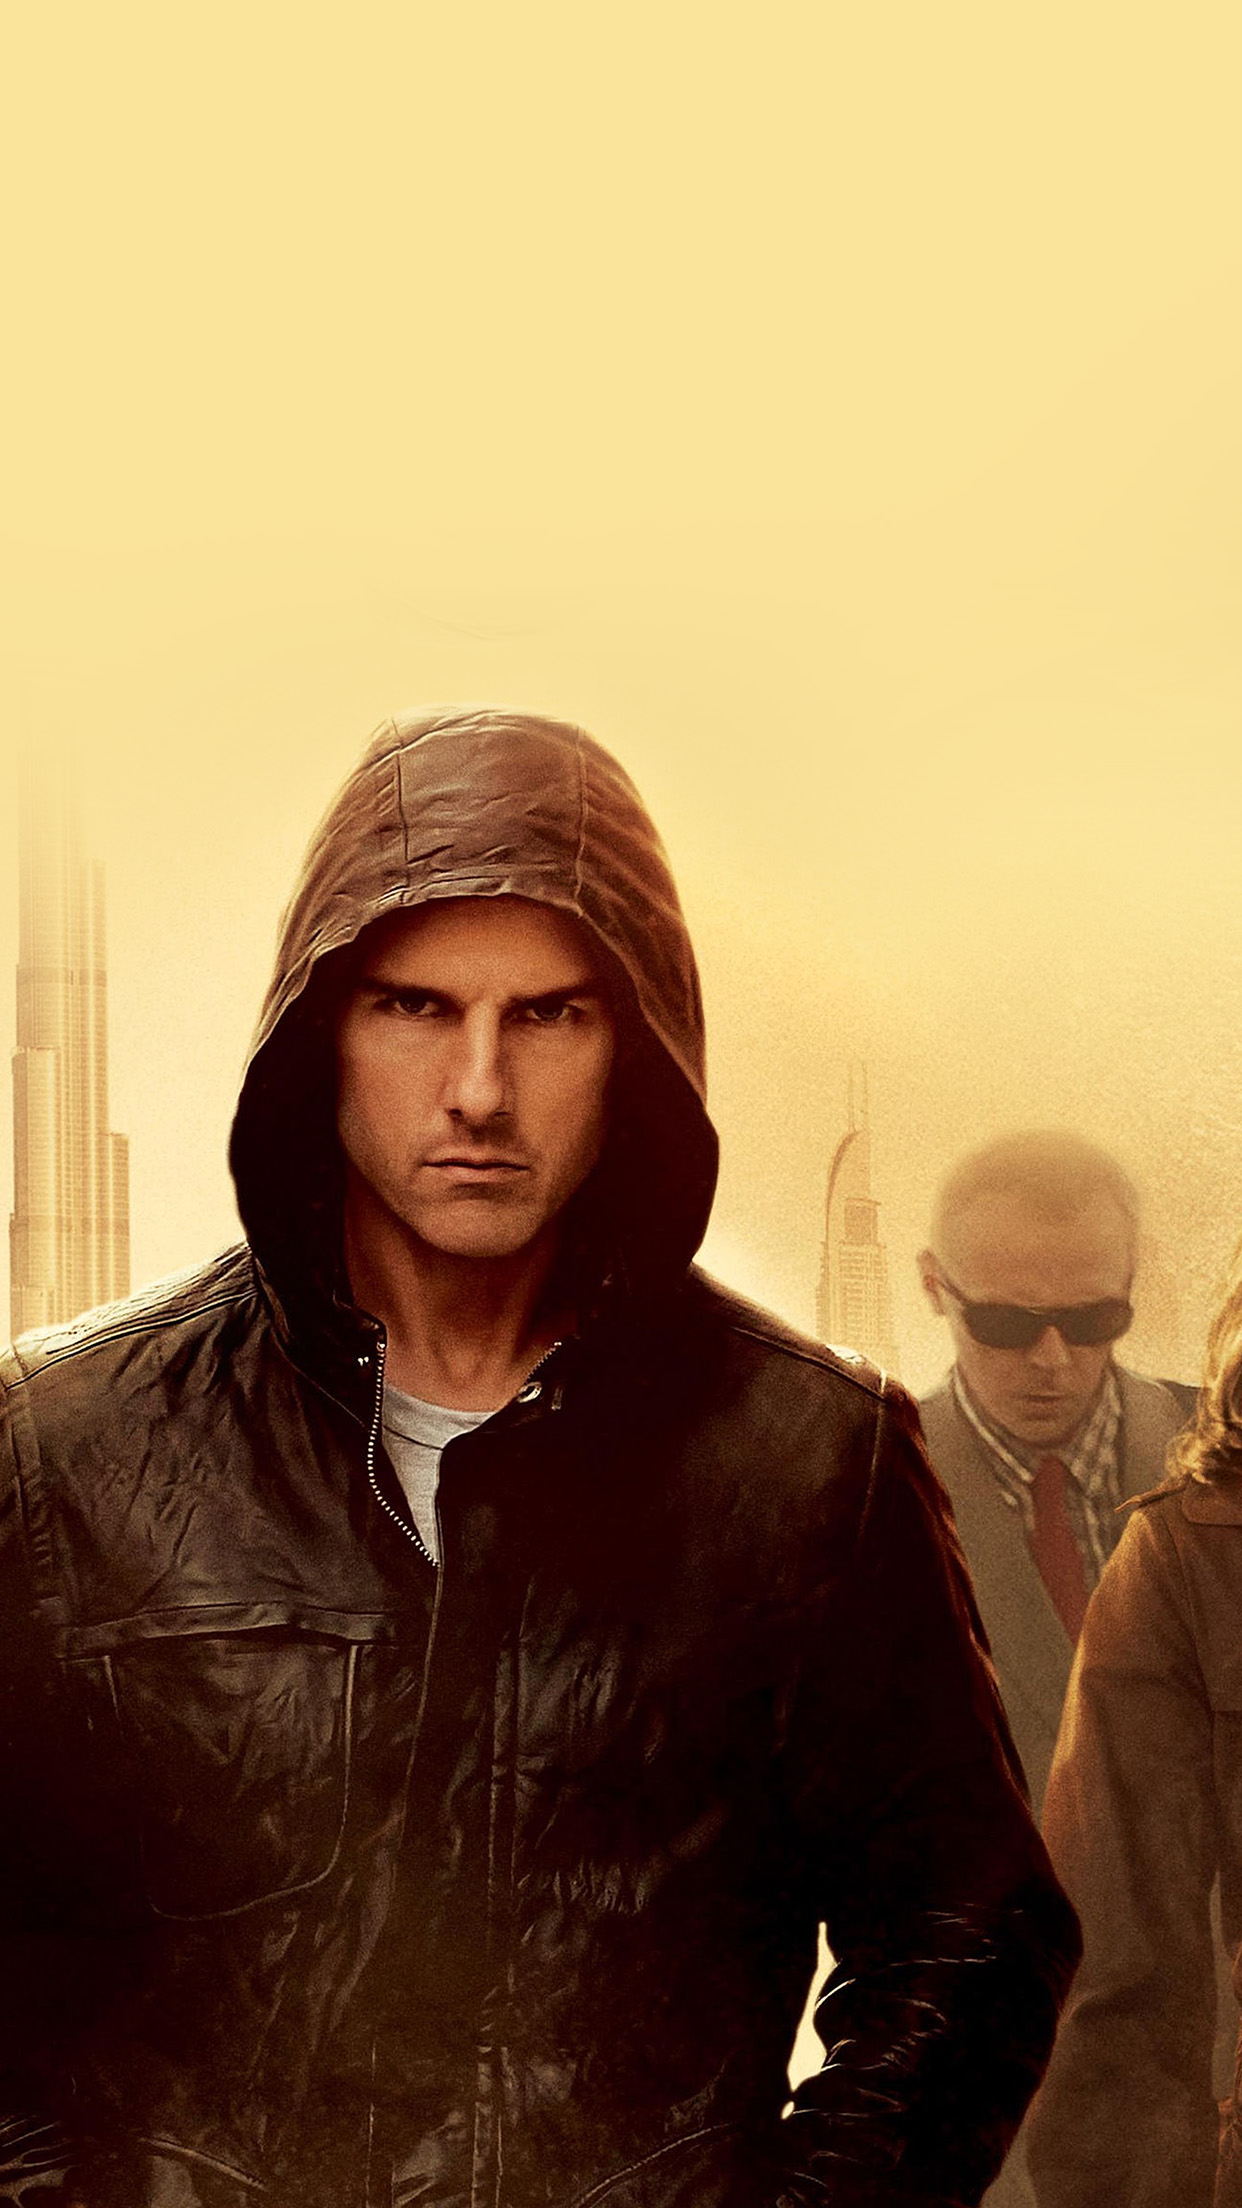 Hg11 Mission Impossible Tom Cruise Film Art Yellow